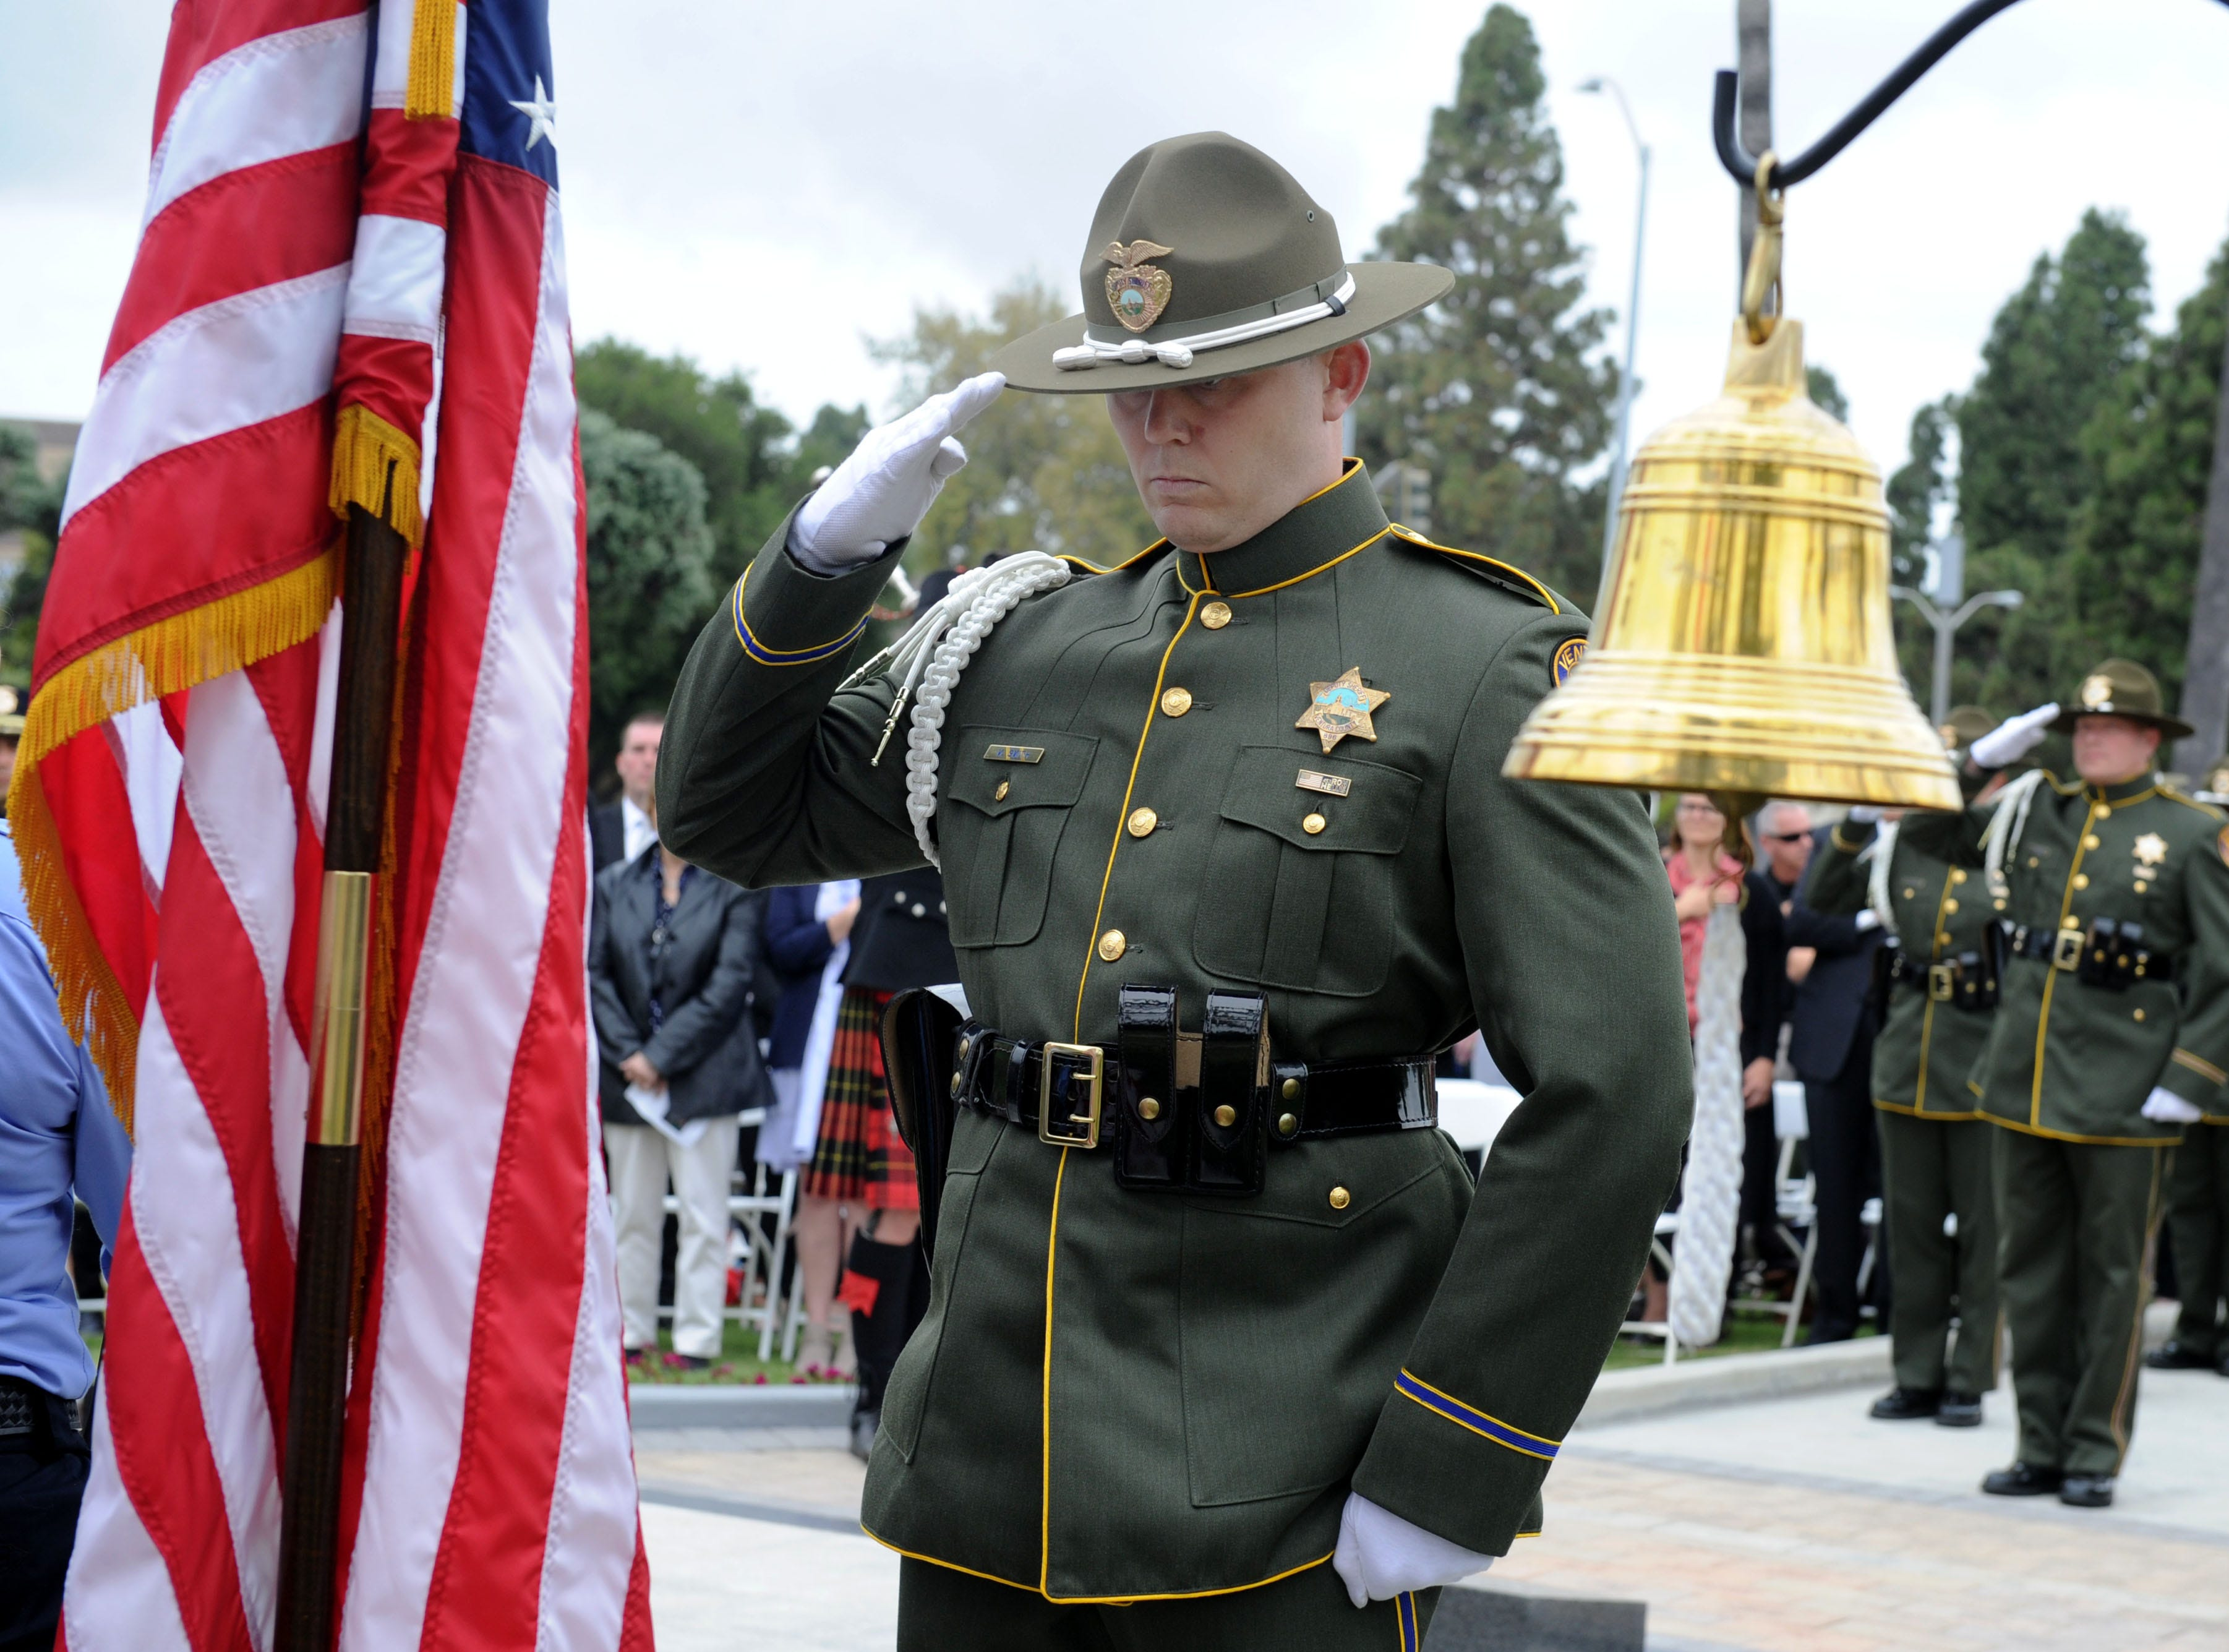 Matt Smith, with the honor guard, salutes the flag at the Ventura County Peace Officers Memorial on Thursday in Ventura.